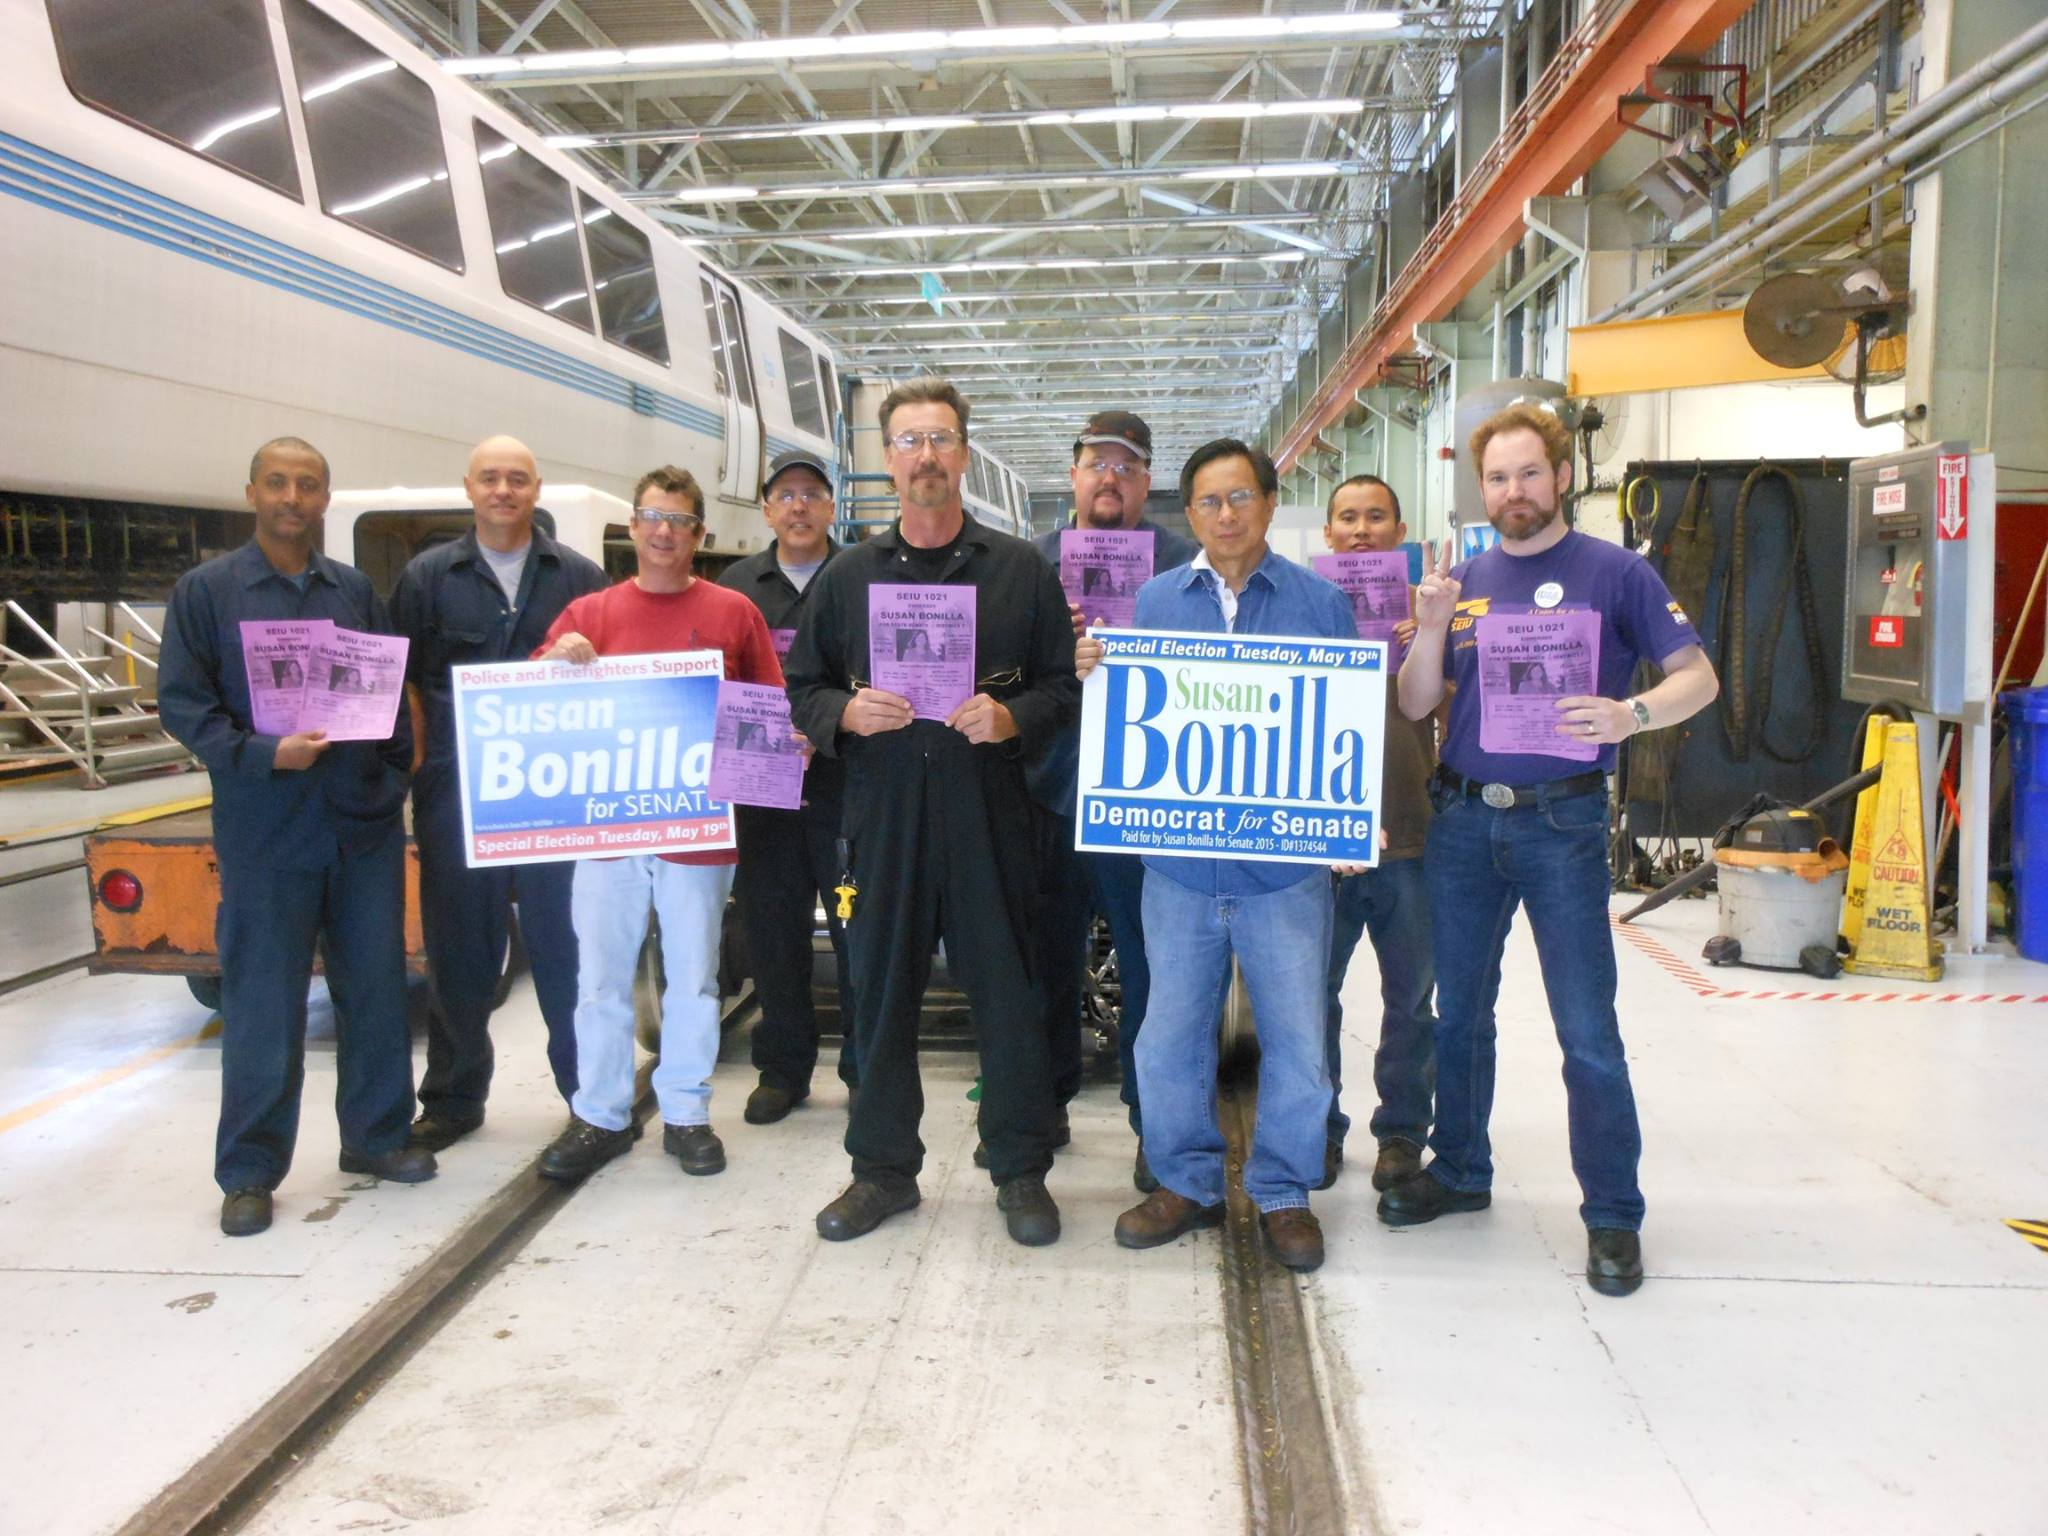 RIC1-BART_Richmond_Yard-Shift_No._1_rallies_for_Susan_Bonilla.jpg